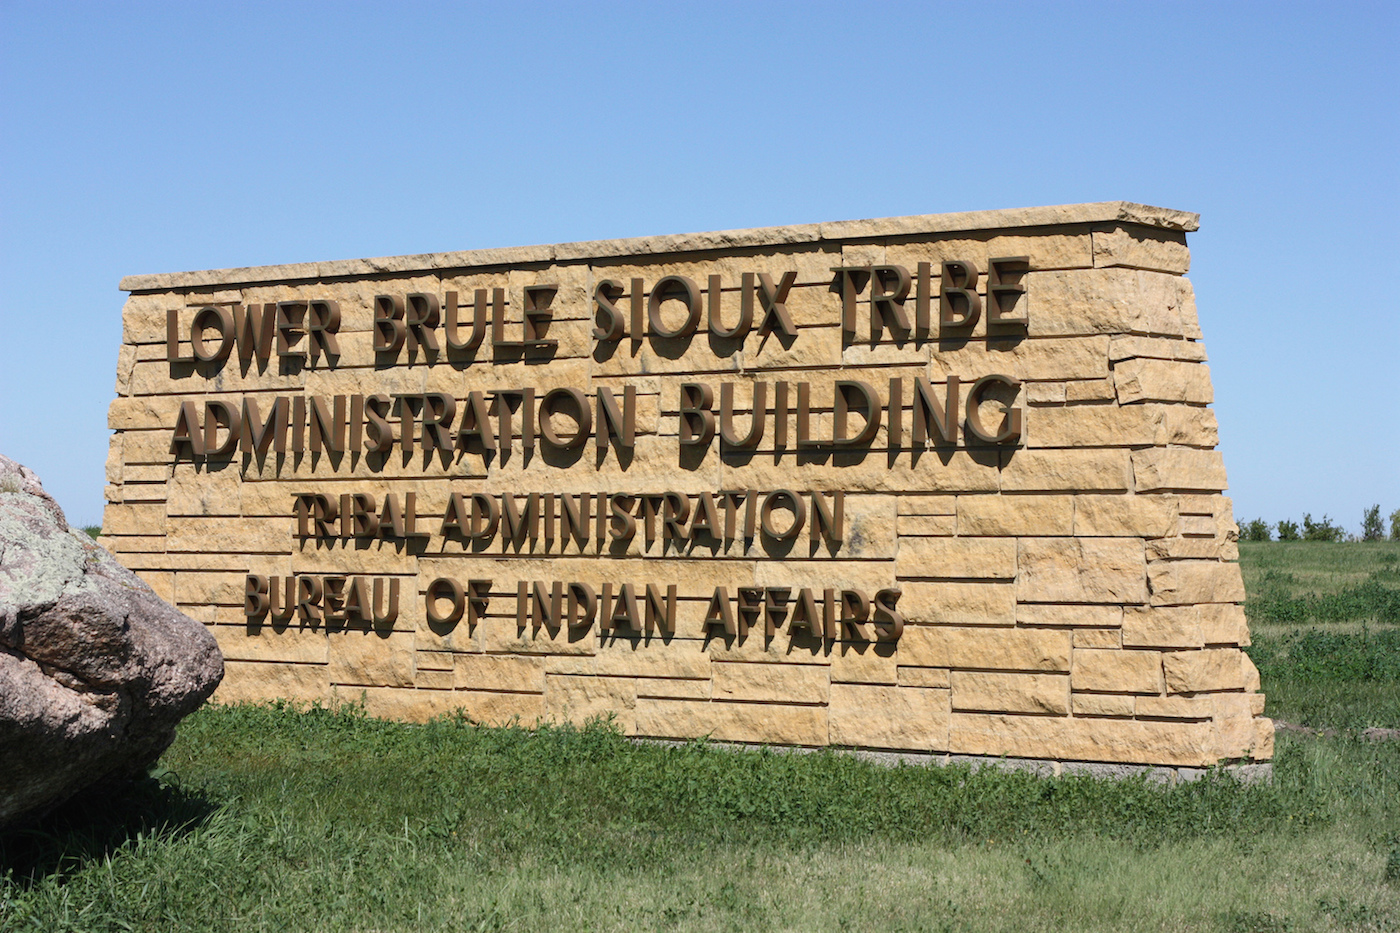 Landowners from Lower Brule Sioux Tribe see $11M in Cobell buy-back offers